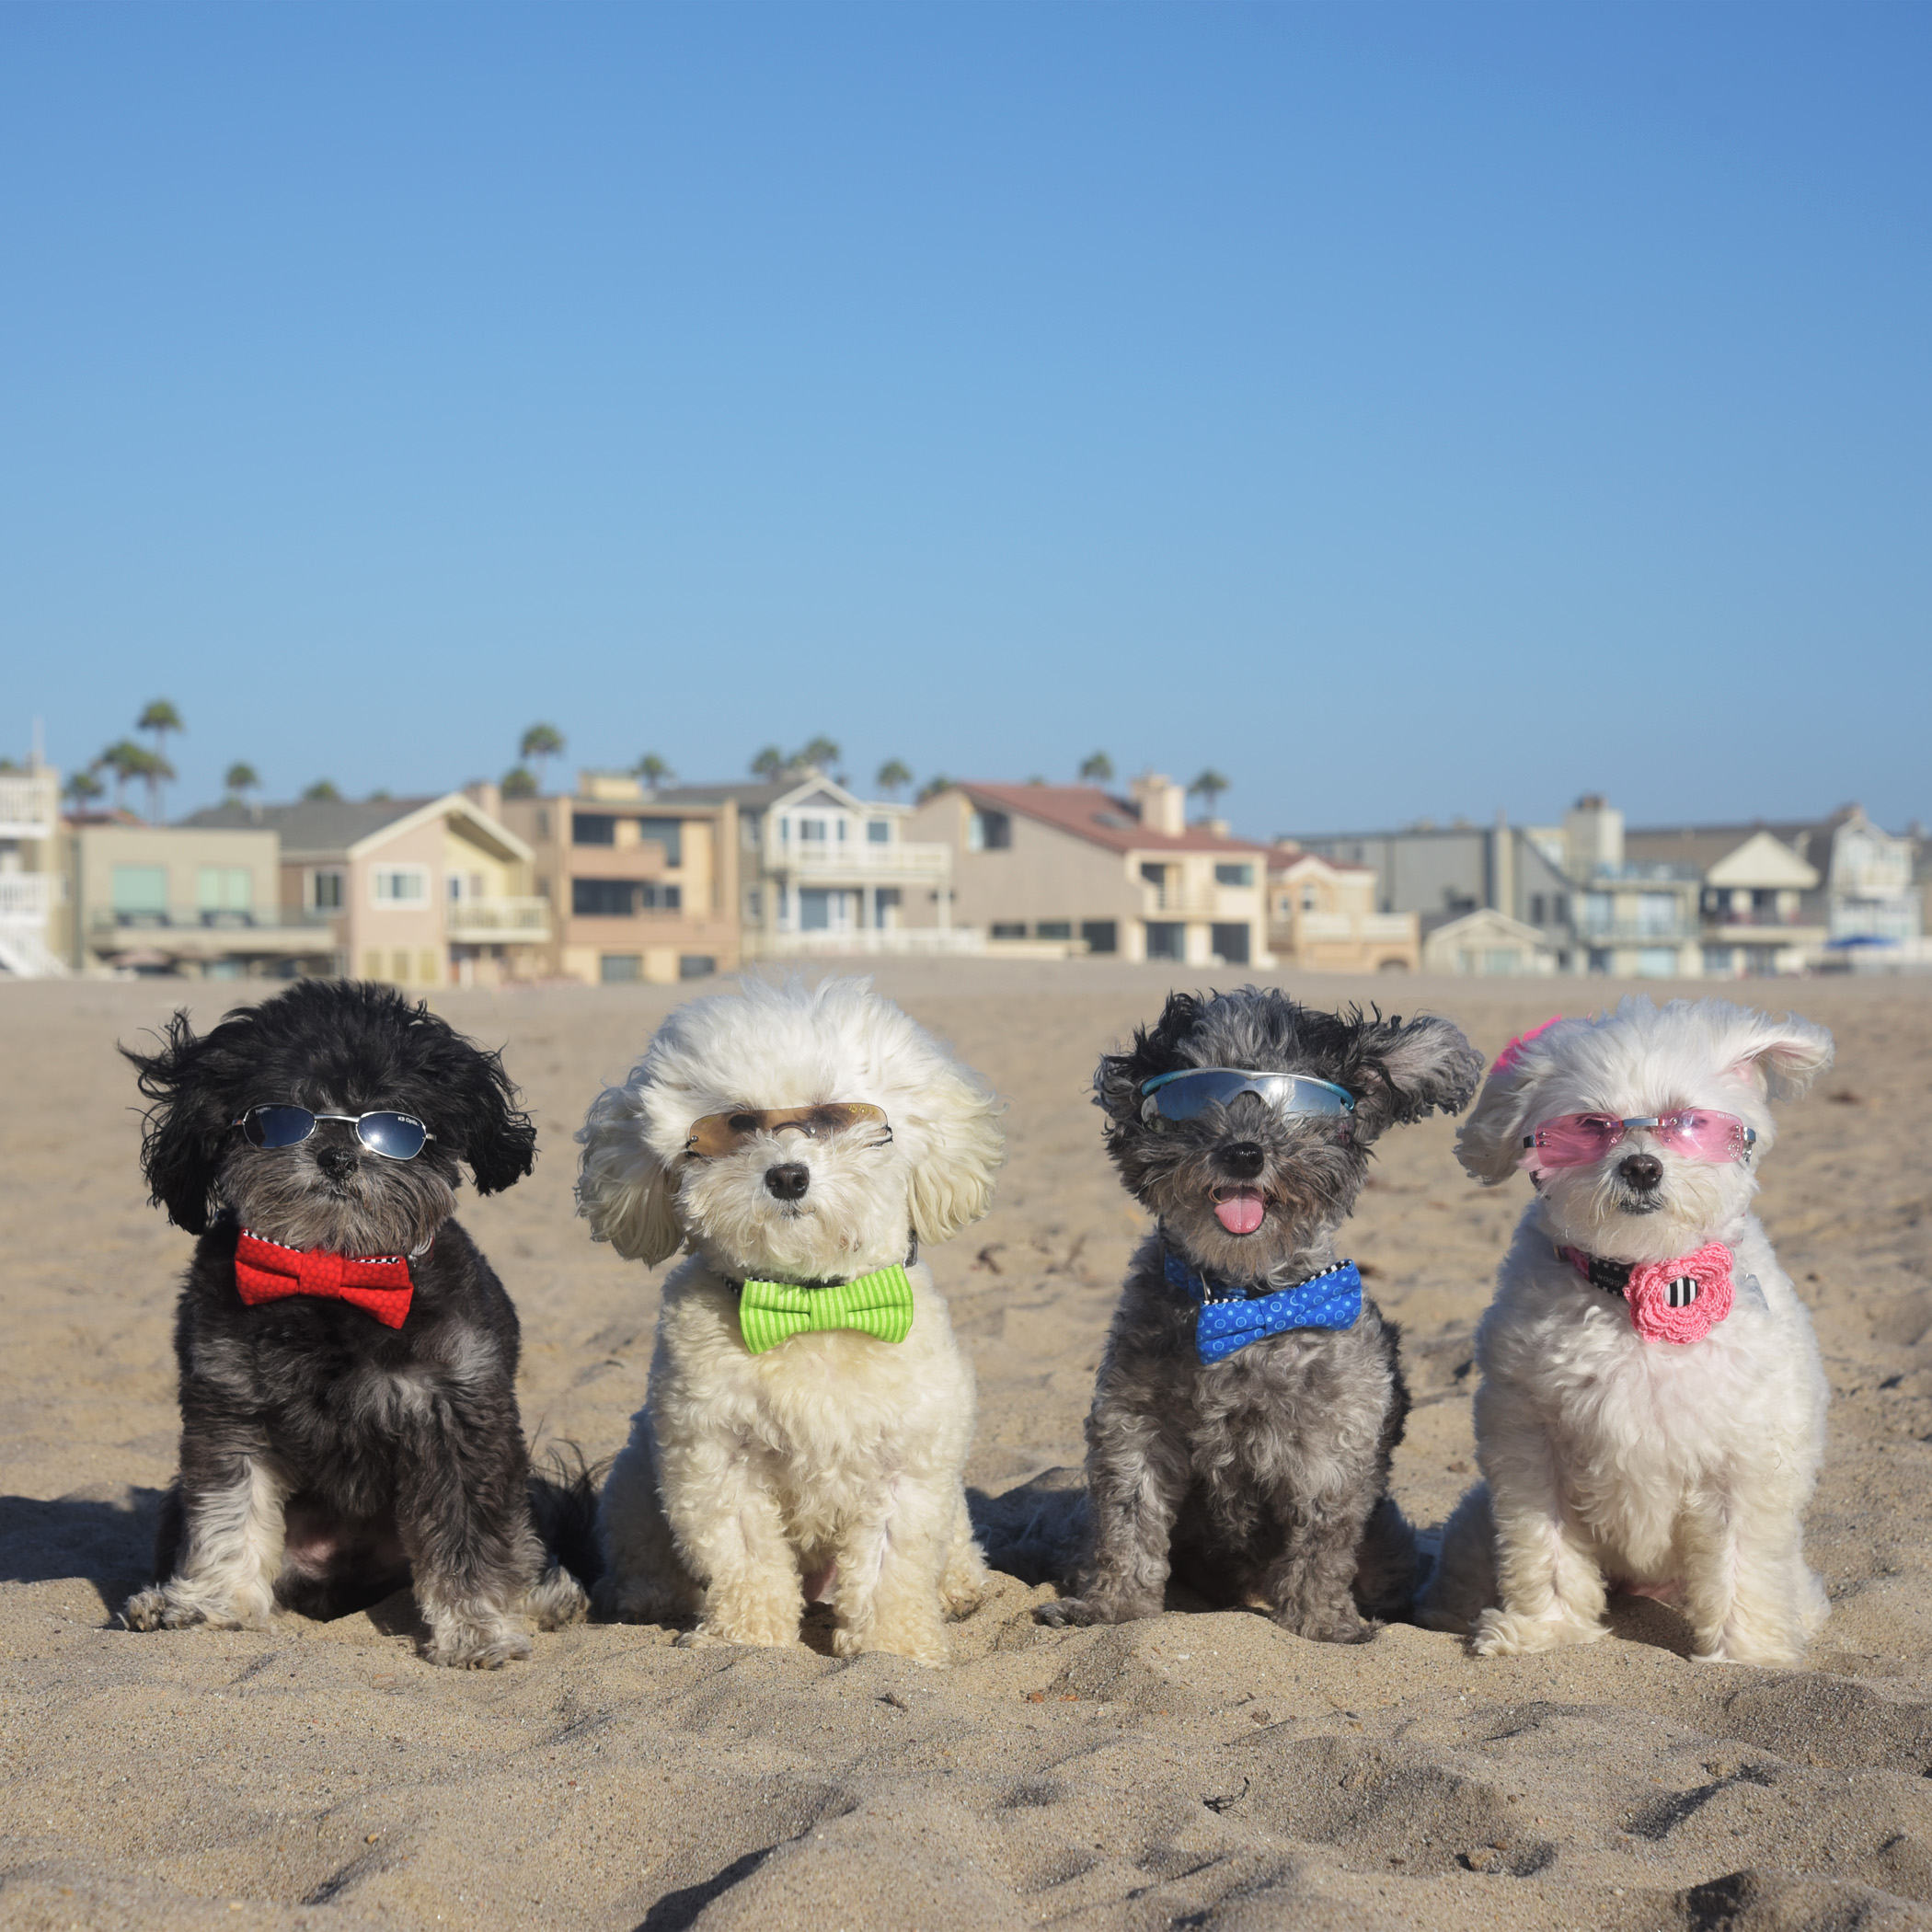 No visit to the beach would be complete without a beach modeling photo! We're wearing our favorite designer, Waggiwear.com.